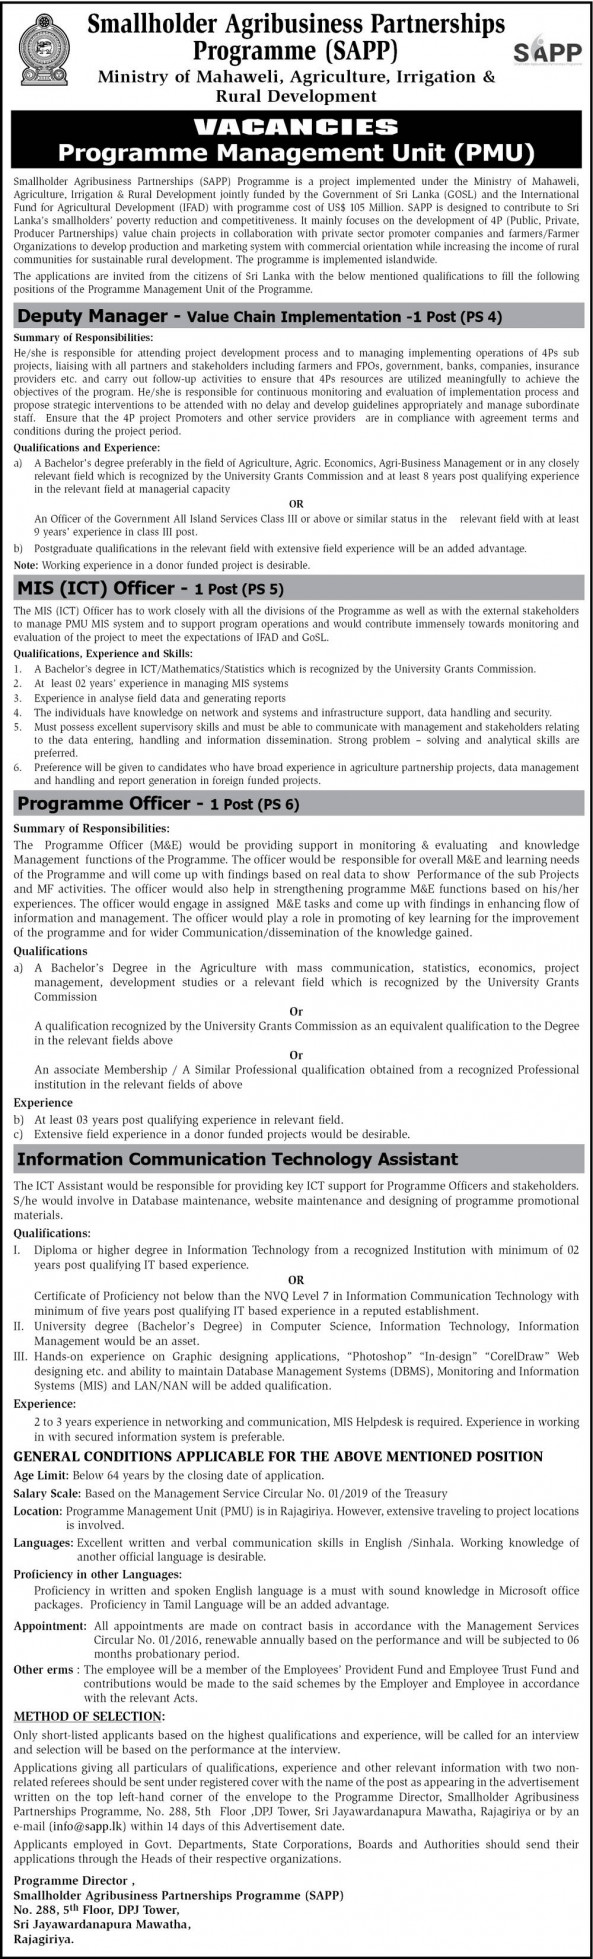 Information Communication Technology Assistant, Programme Officer, MIS (ICT) Officer, Deputy Manager job from Ministry of Mahaweli,Agriculture,Irrigation & Rural Development  in Colombo, Sri Lanka